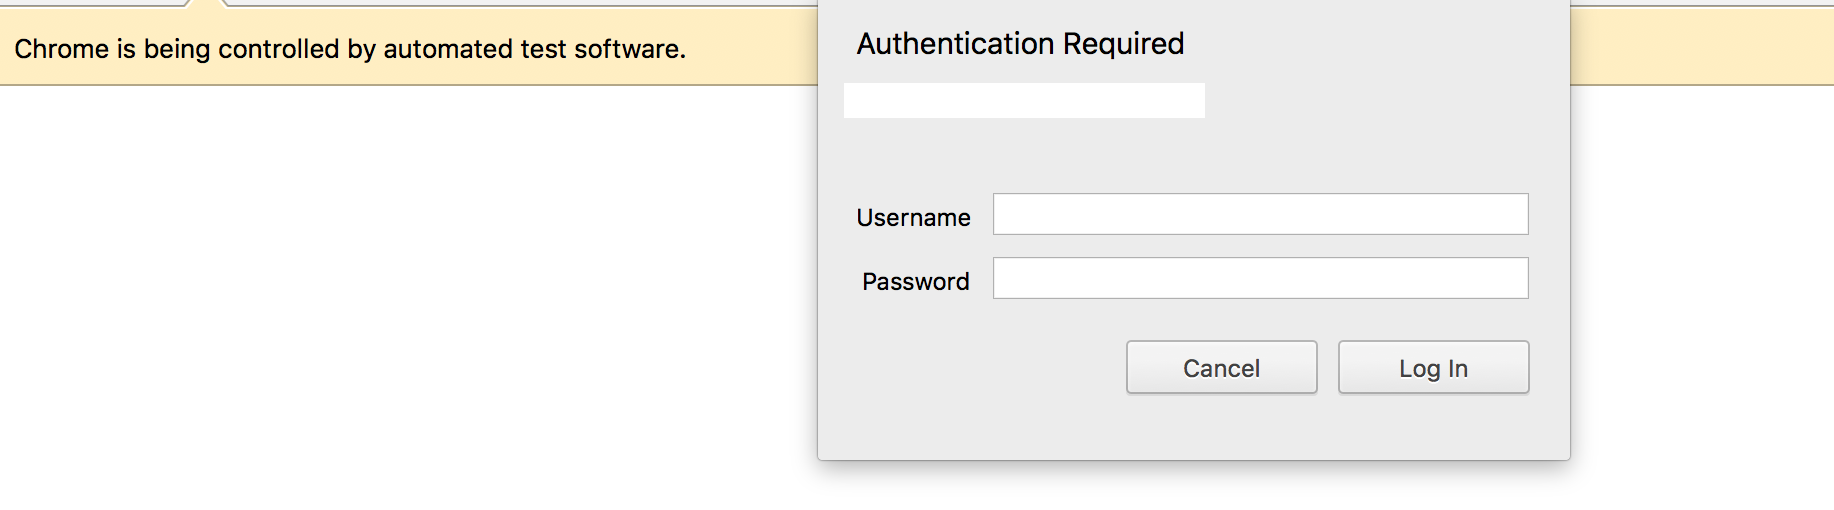 basic auth dialog · Issue #418 · GoogleChrome/puppeteer · GitHub